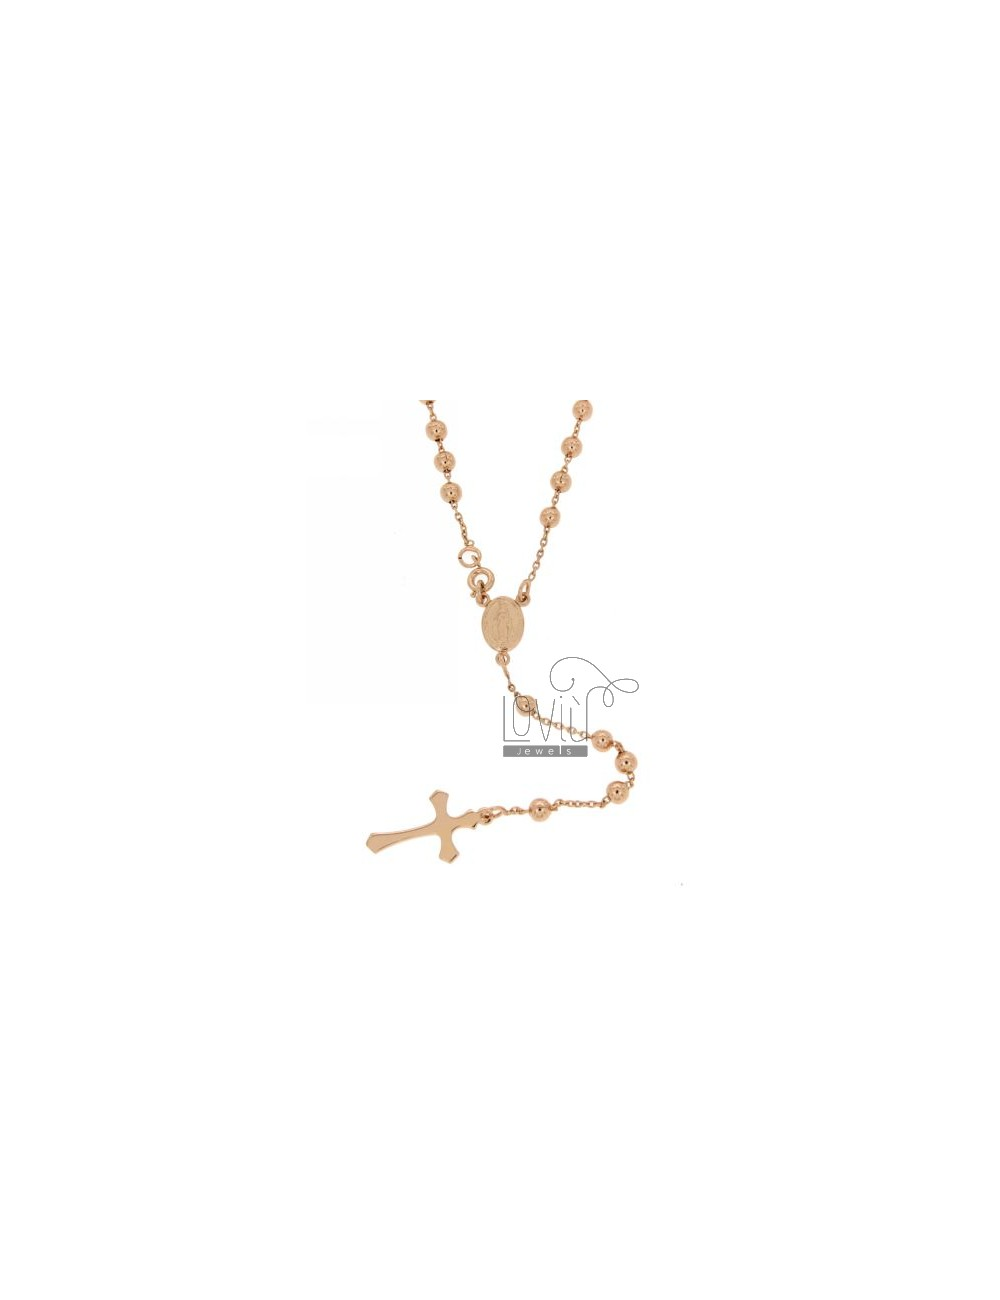 CHAPLET 4 MM STEEL ROSE GOLD PLATED 50 CM